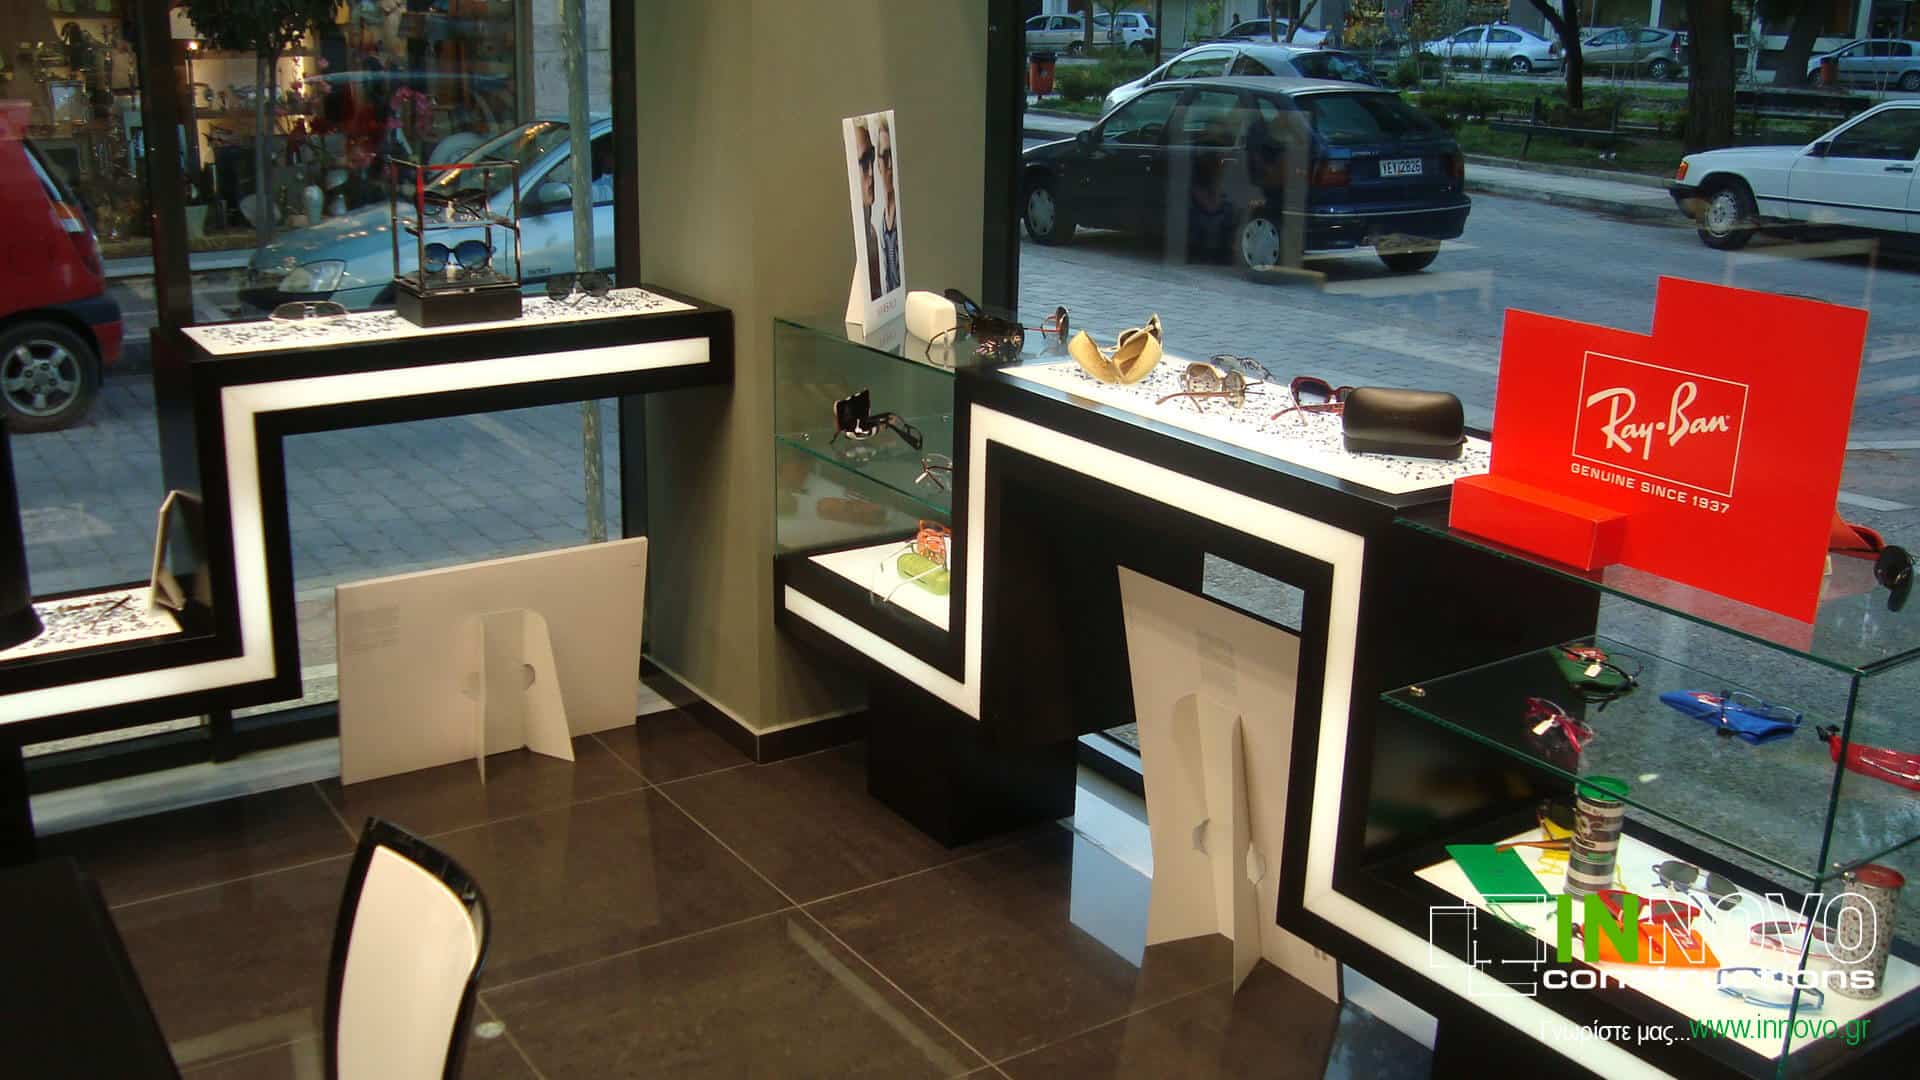 anakainisi-optikou-optics-renovation-optiko-amaliada-1130-29-1